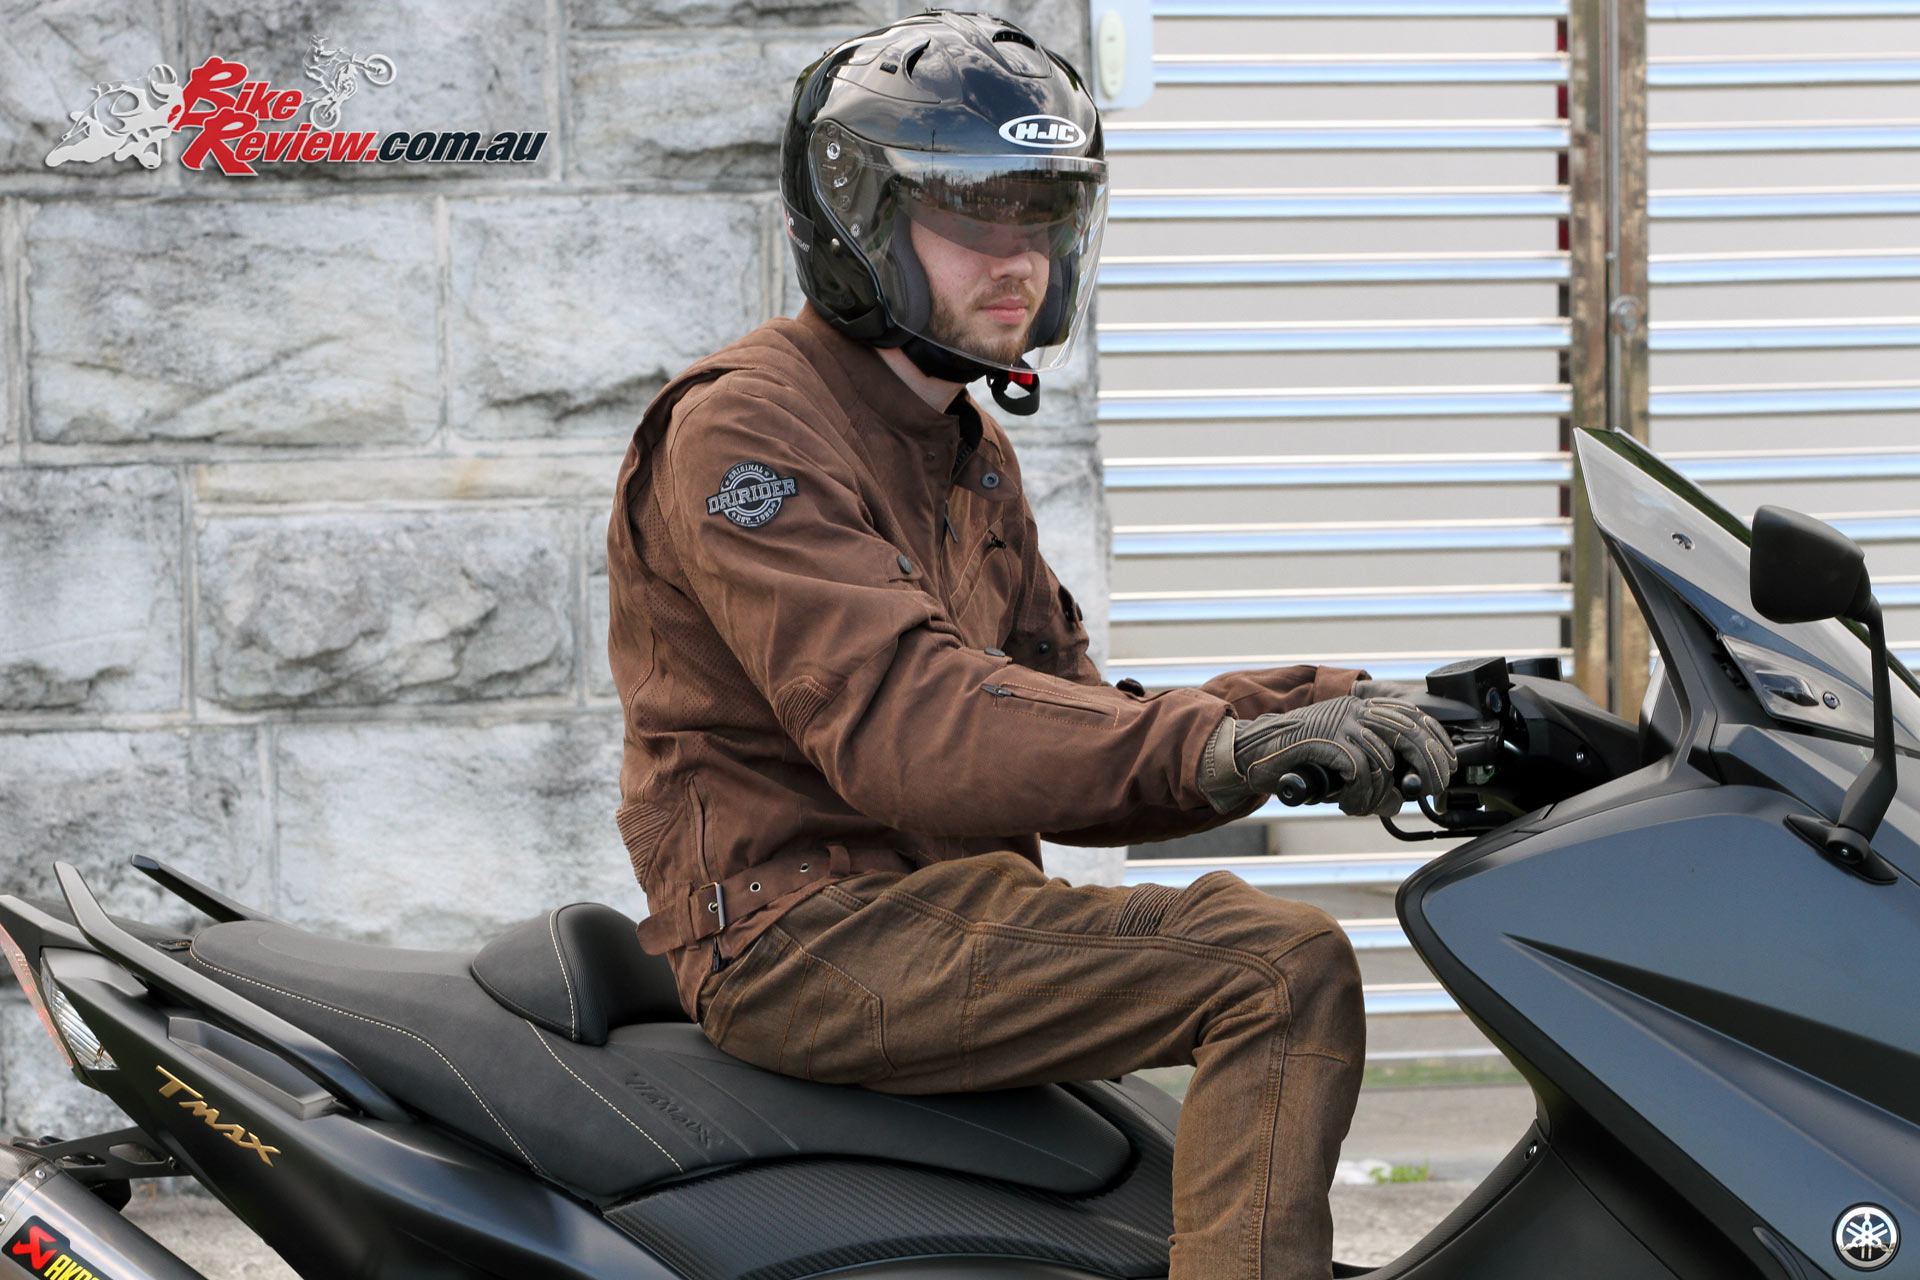 DriRider-Scrambler-jacket-Bike-Review-3